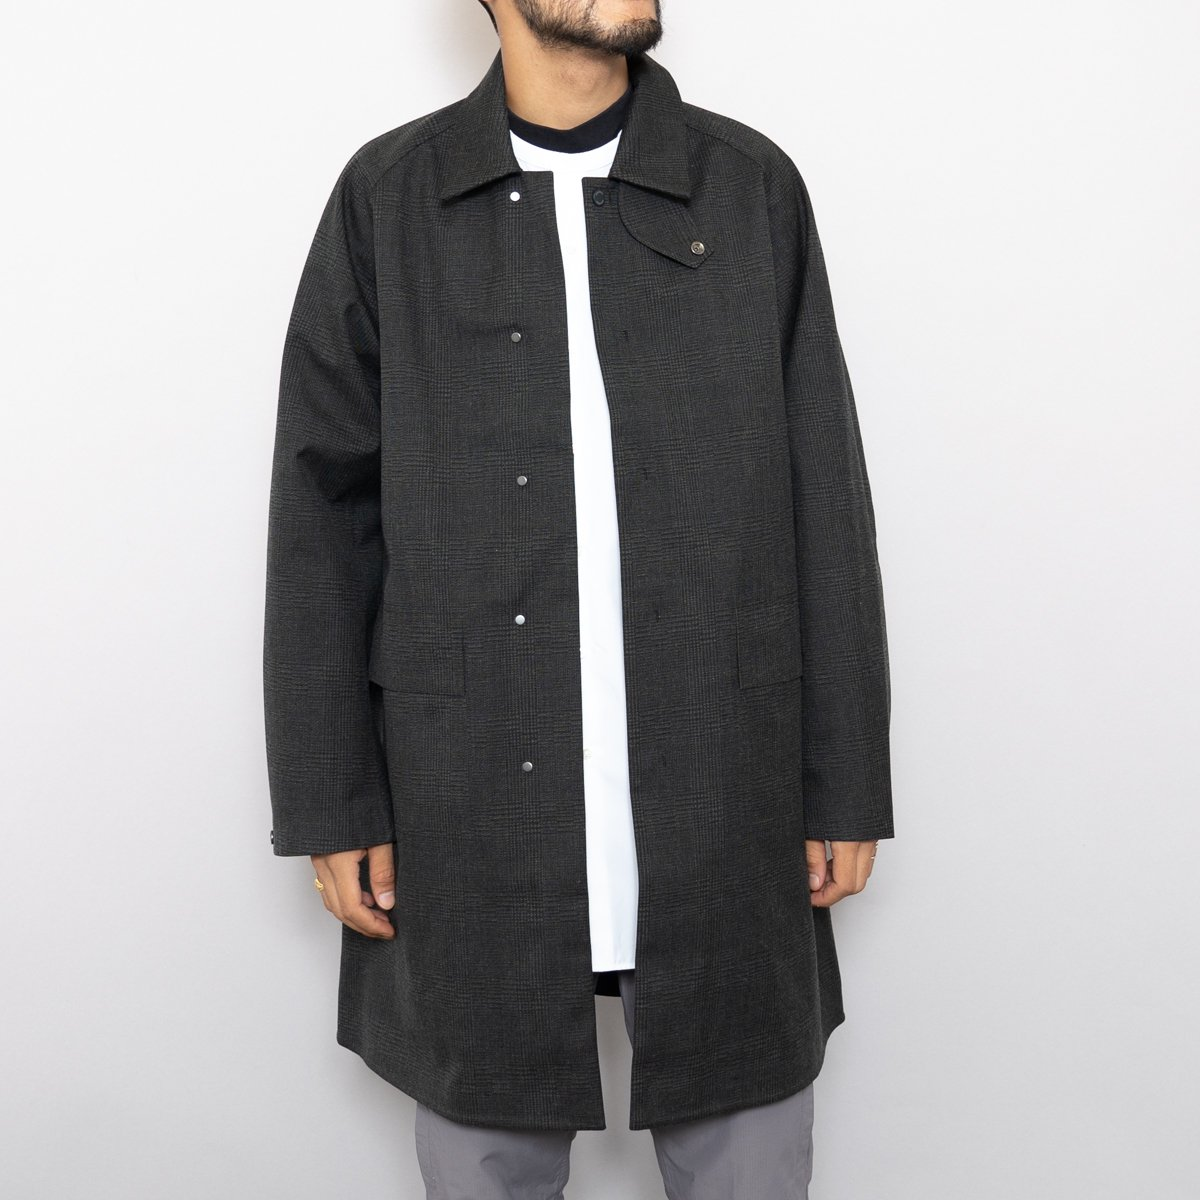 DESCENTE PAUSE * WOOL MIX SOUTIEN COLLAR COAT * Glen Check